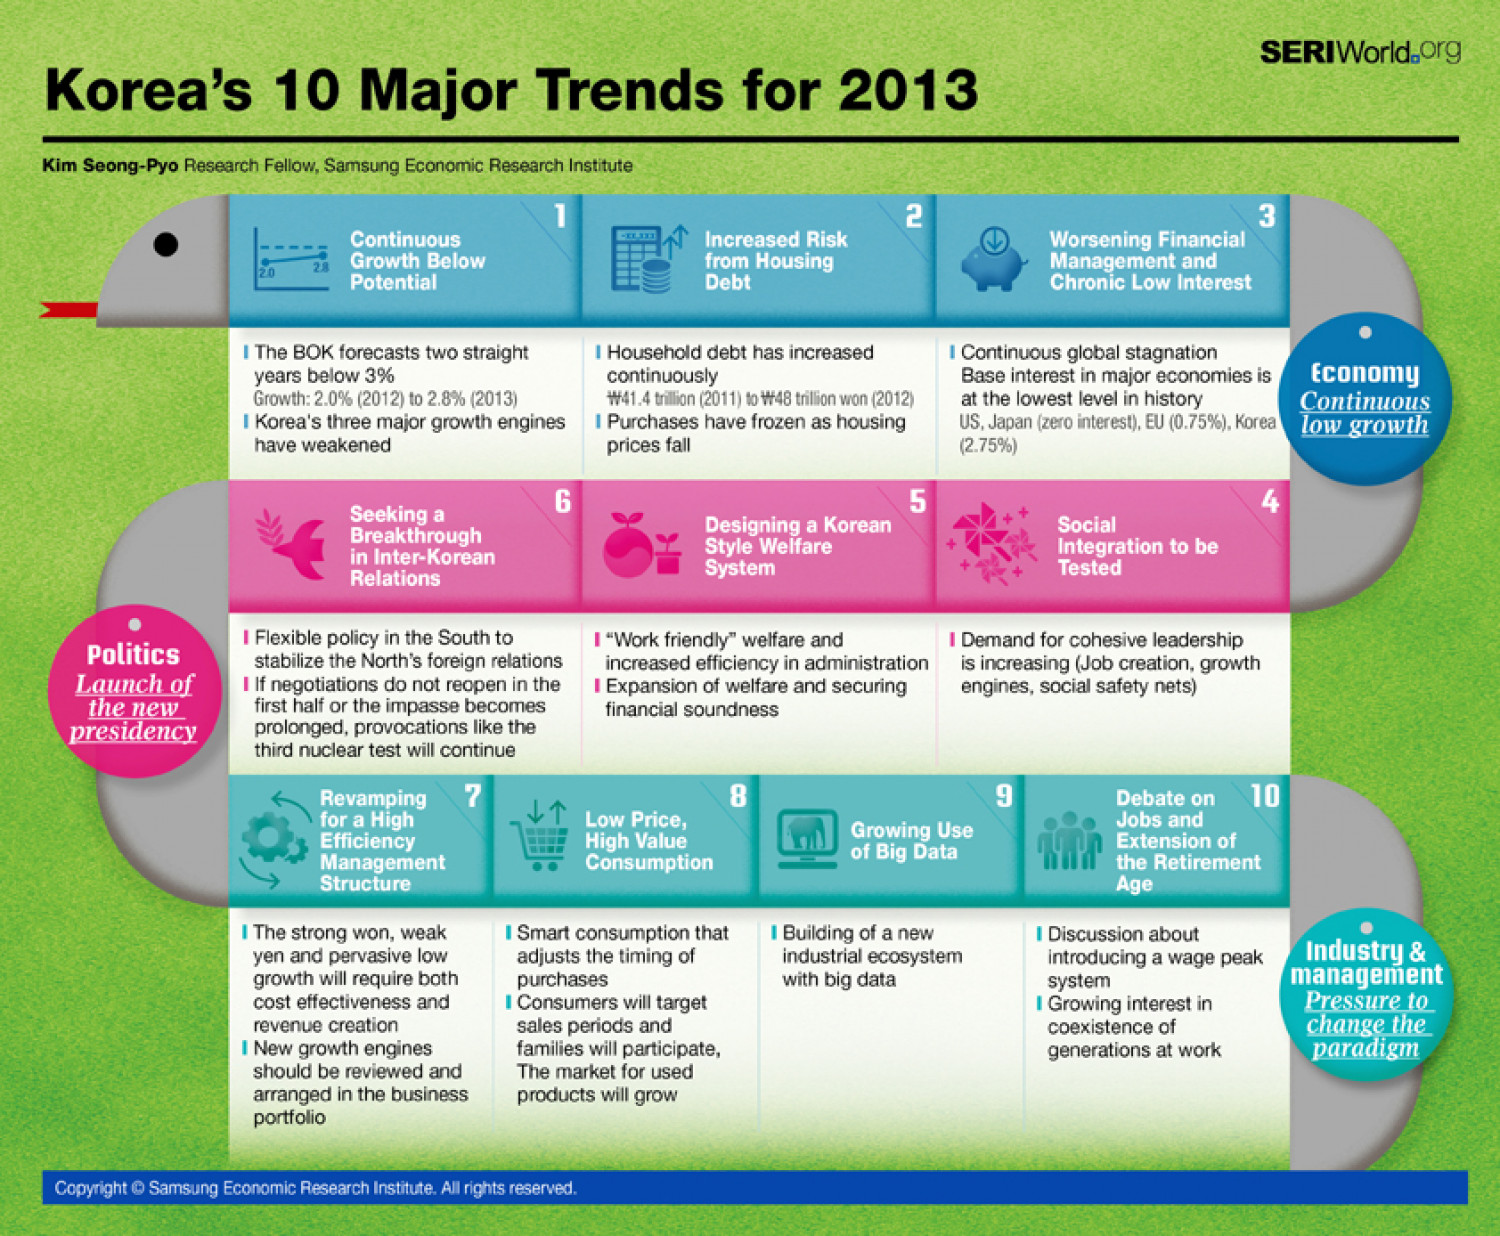 Korea's 10 Major Trends for 2013 Infographic